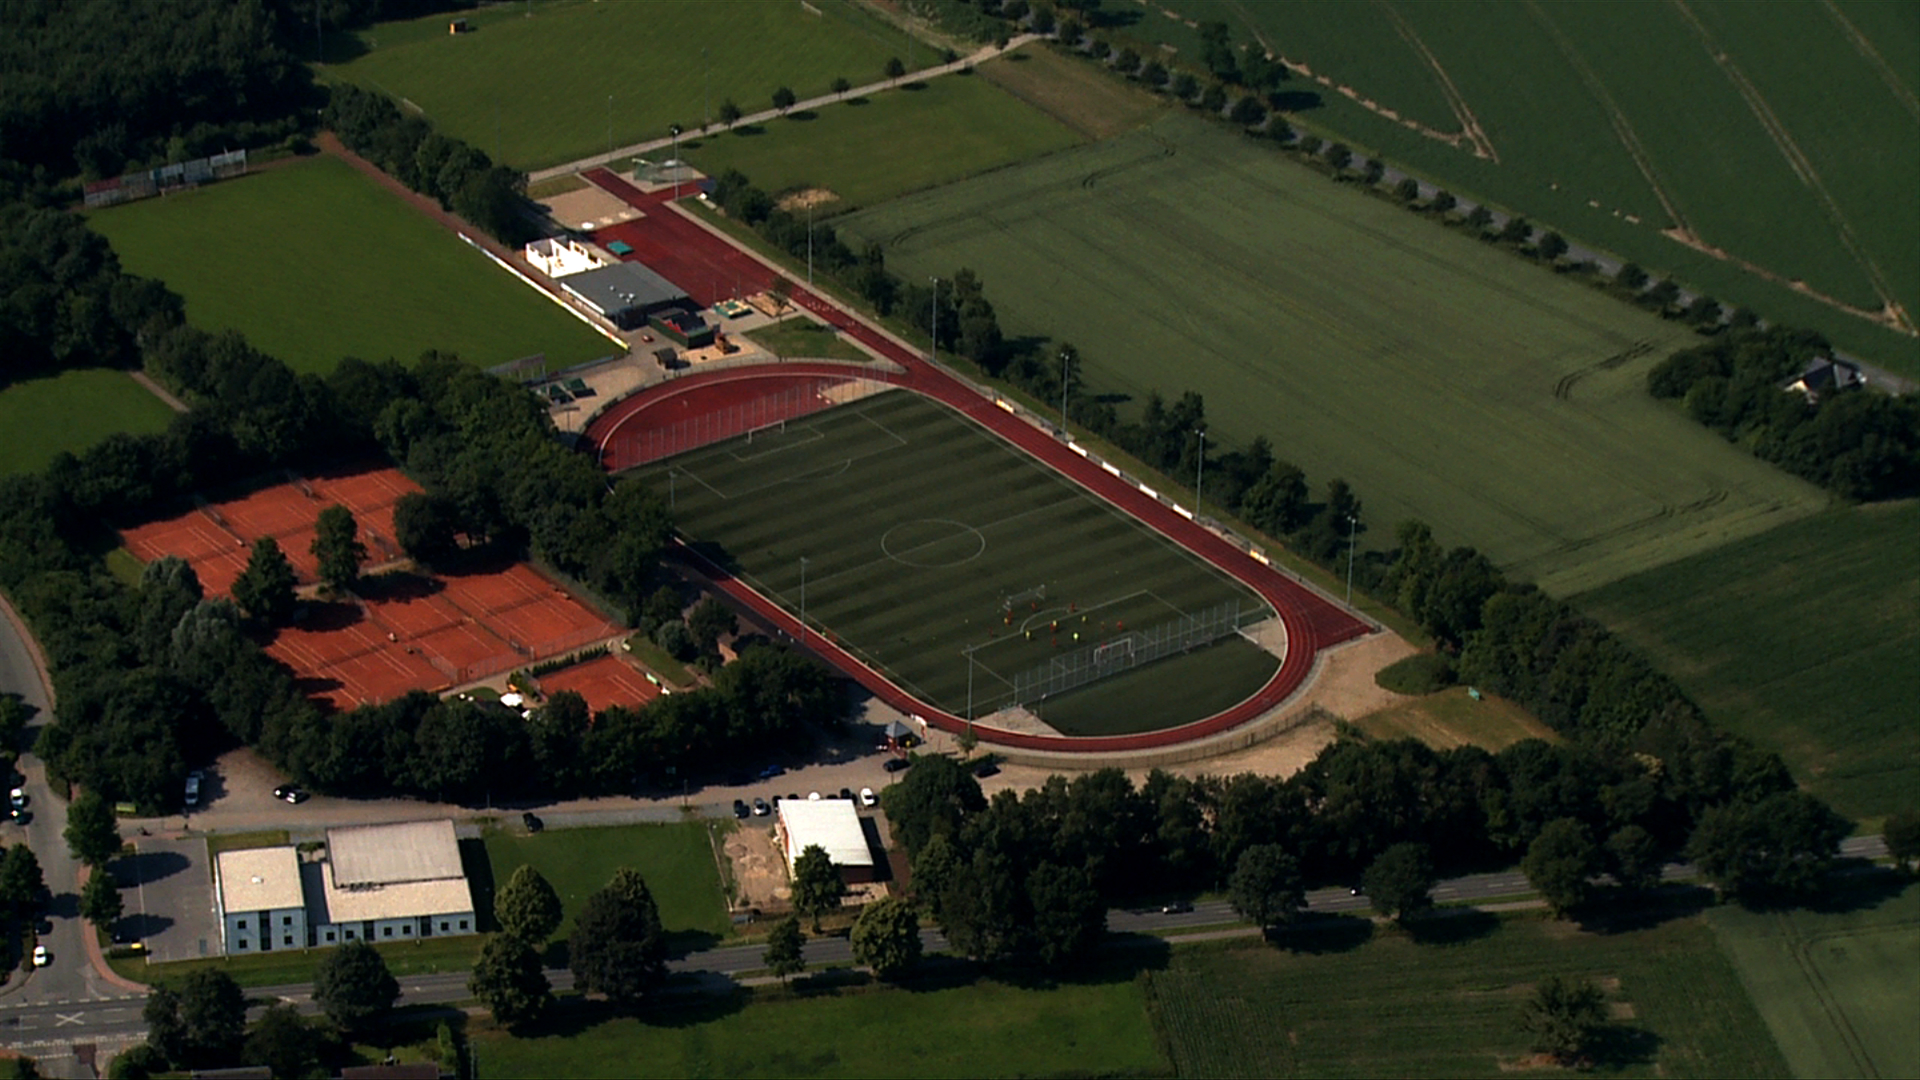 1.3Willy Lemkens Sportpark